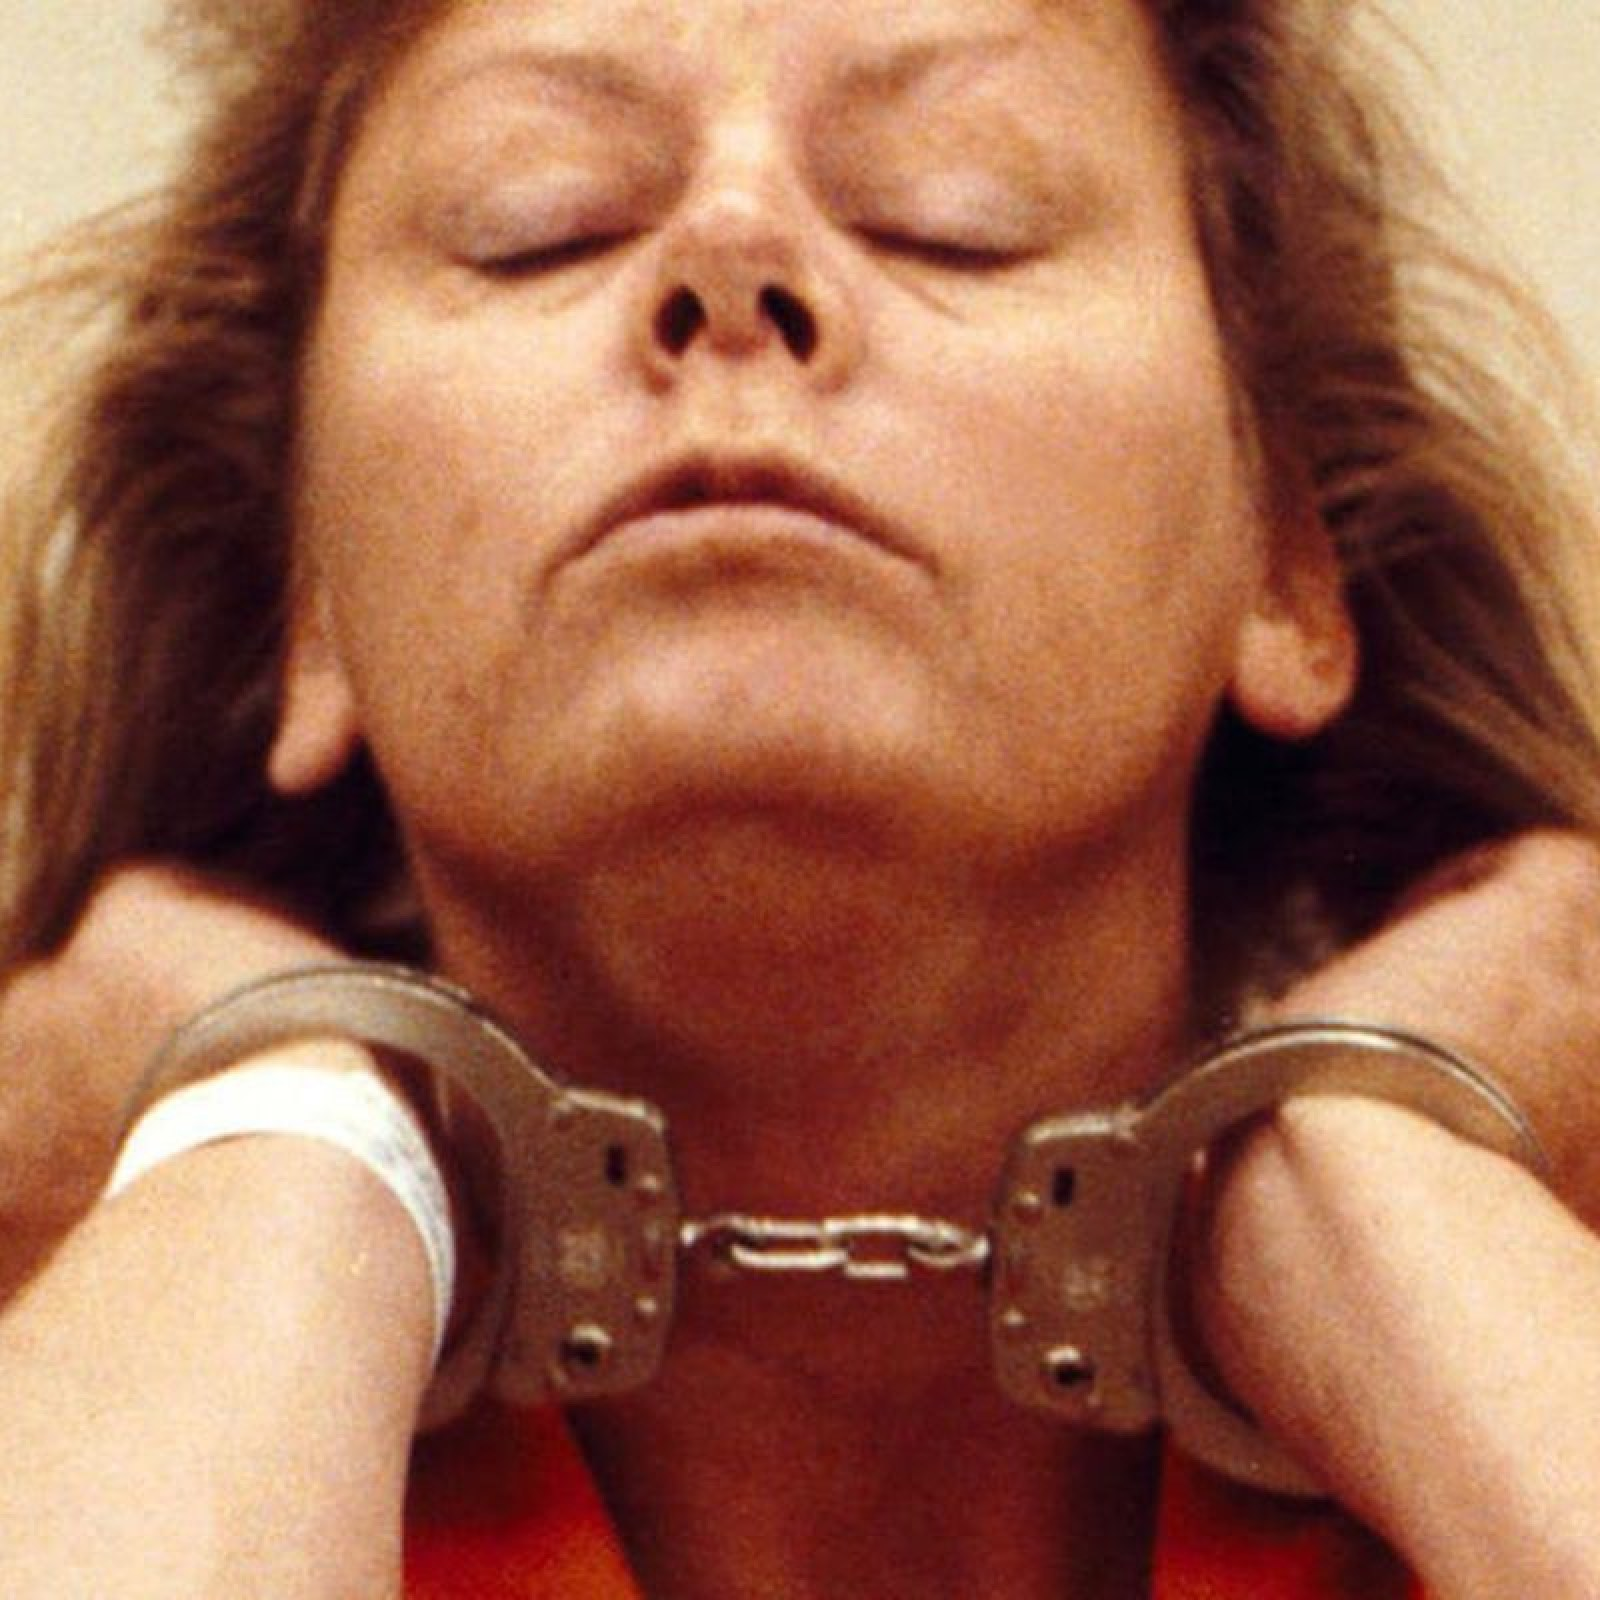 Ranked: The Best True Crime Documentaries and Docuseries